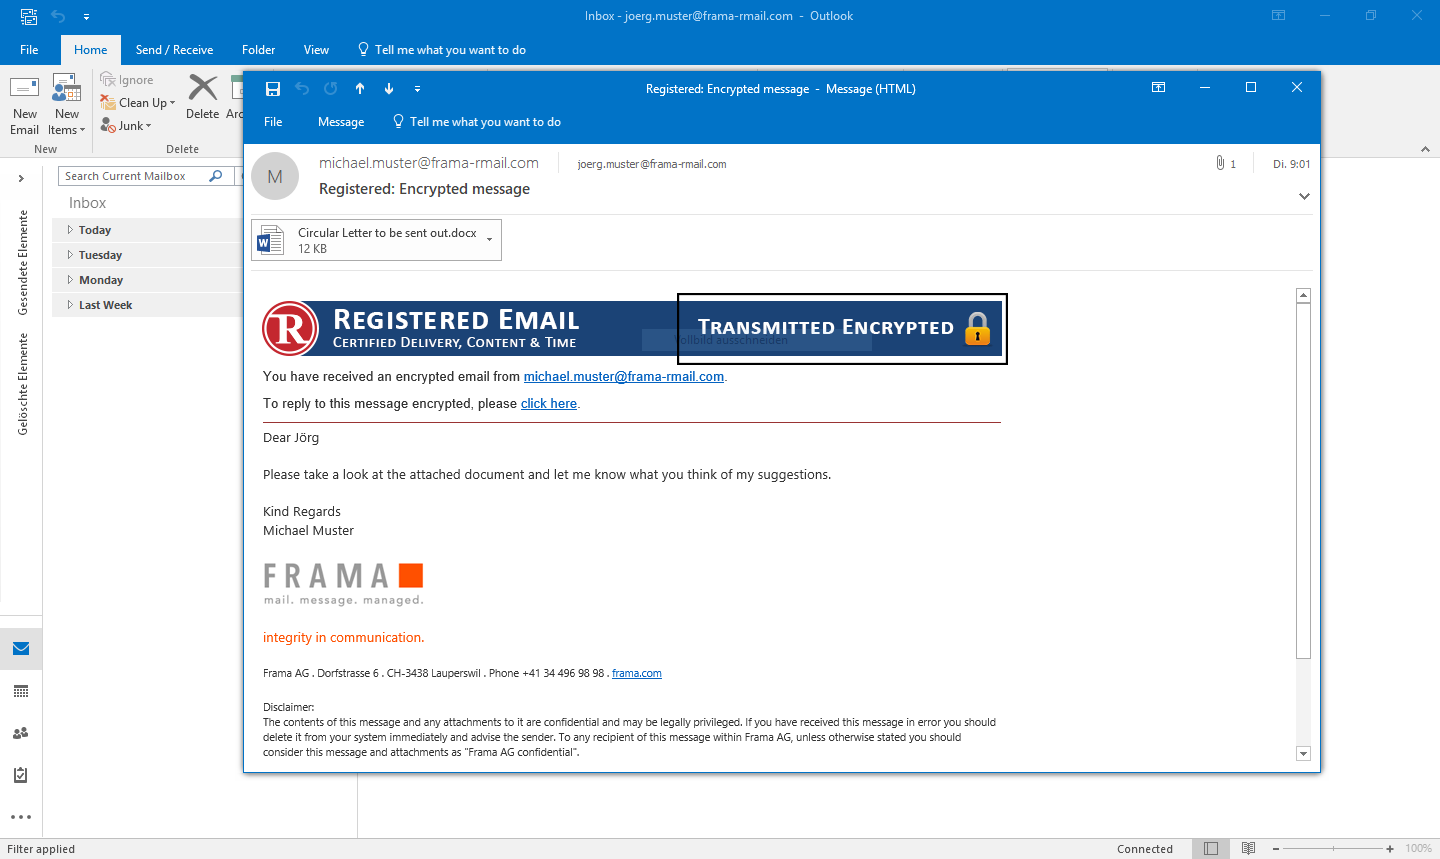 Email Encryption in Outlook with RMail | Frama RMail